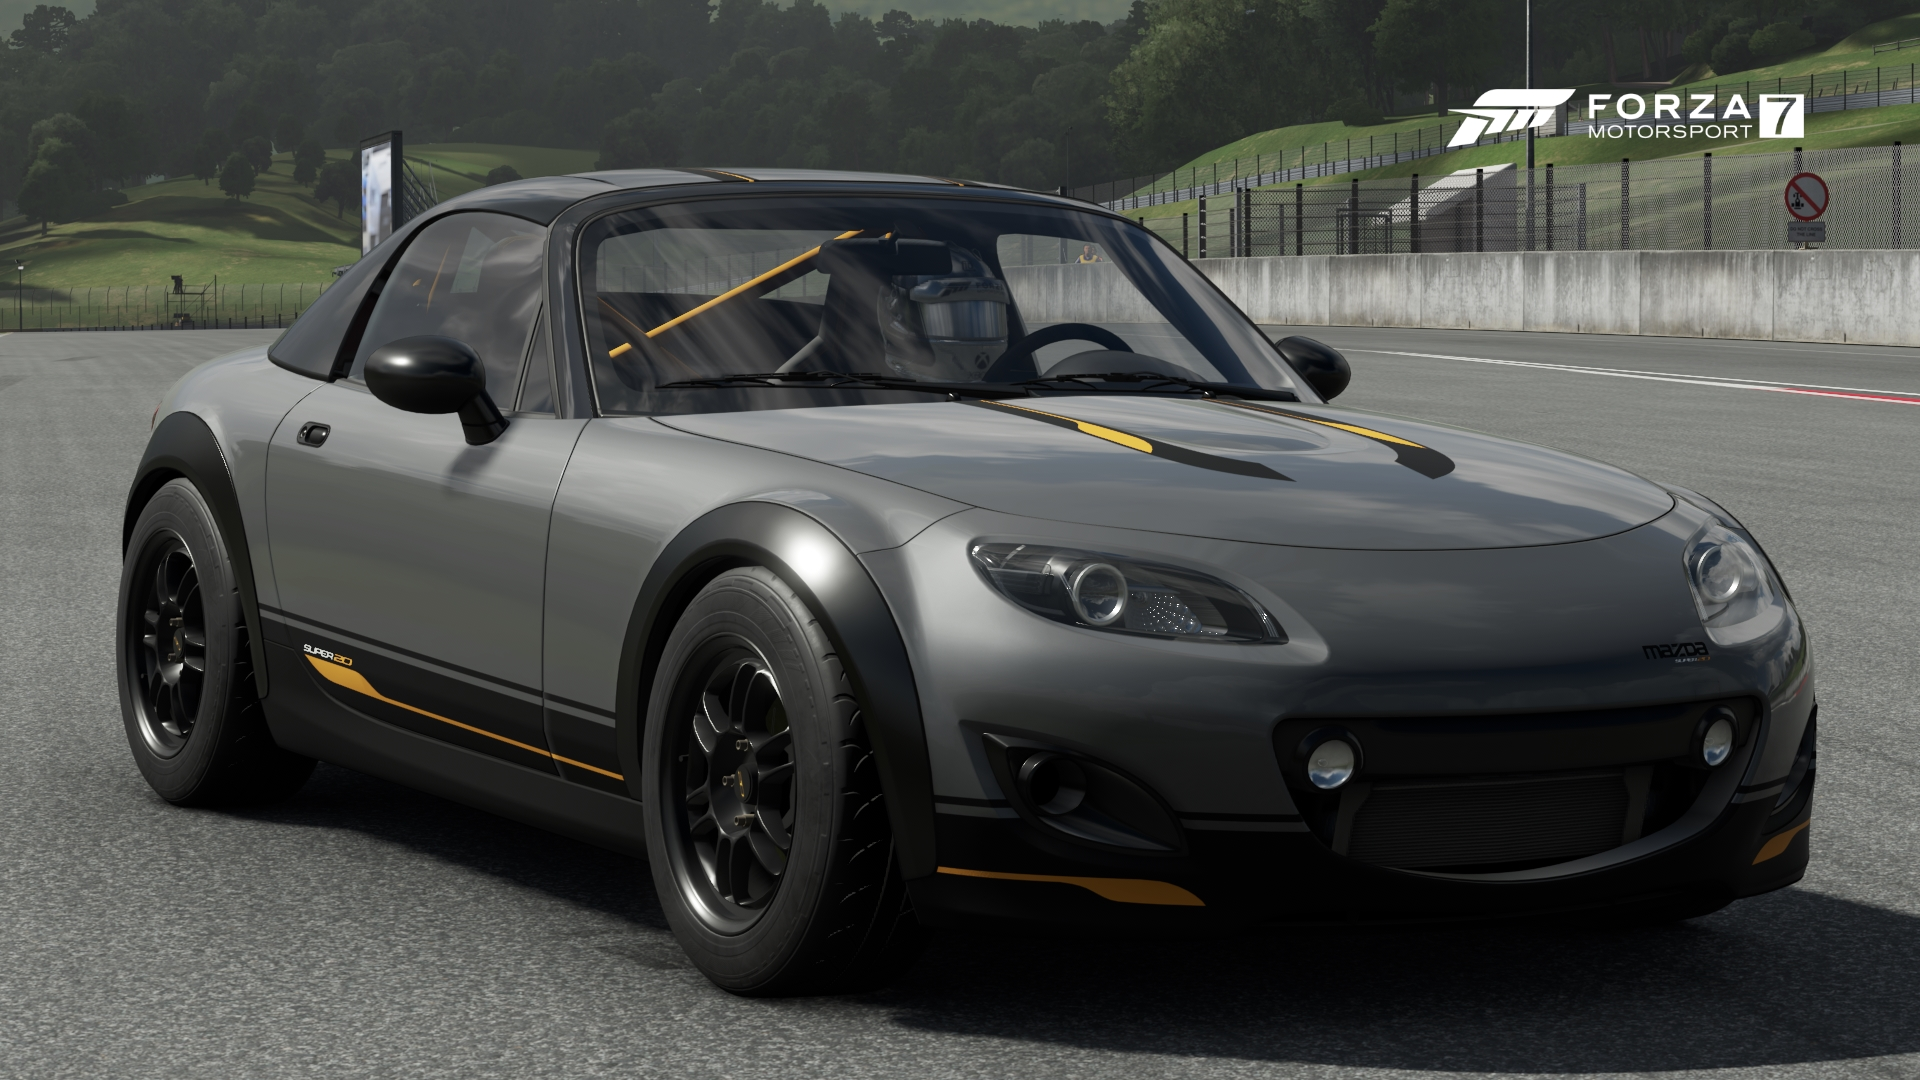 mazda mx 5 super20 forza motorsport wiki fandom powered by wikia. Black Bedroom Furniture Sets. Home Design Ideas